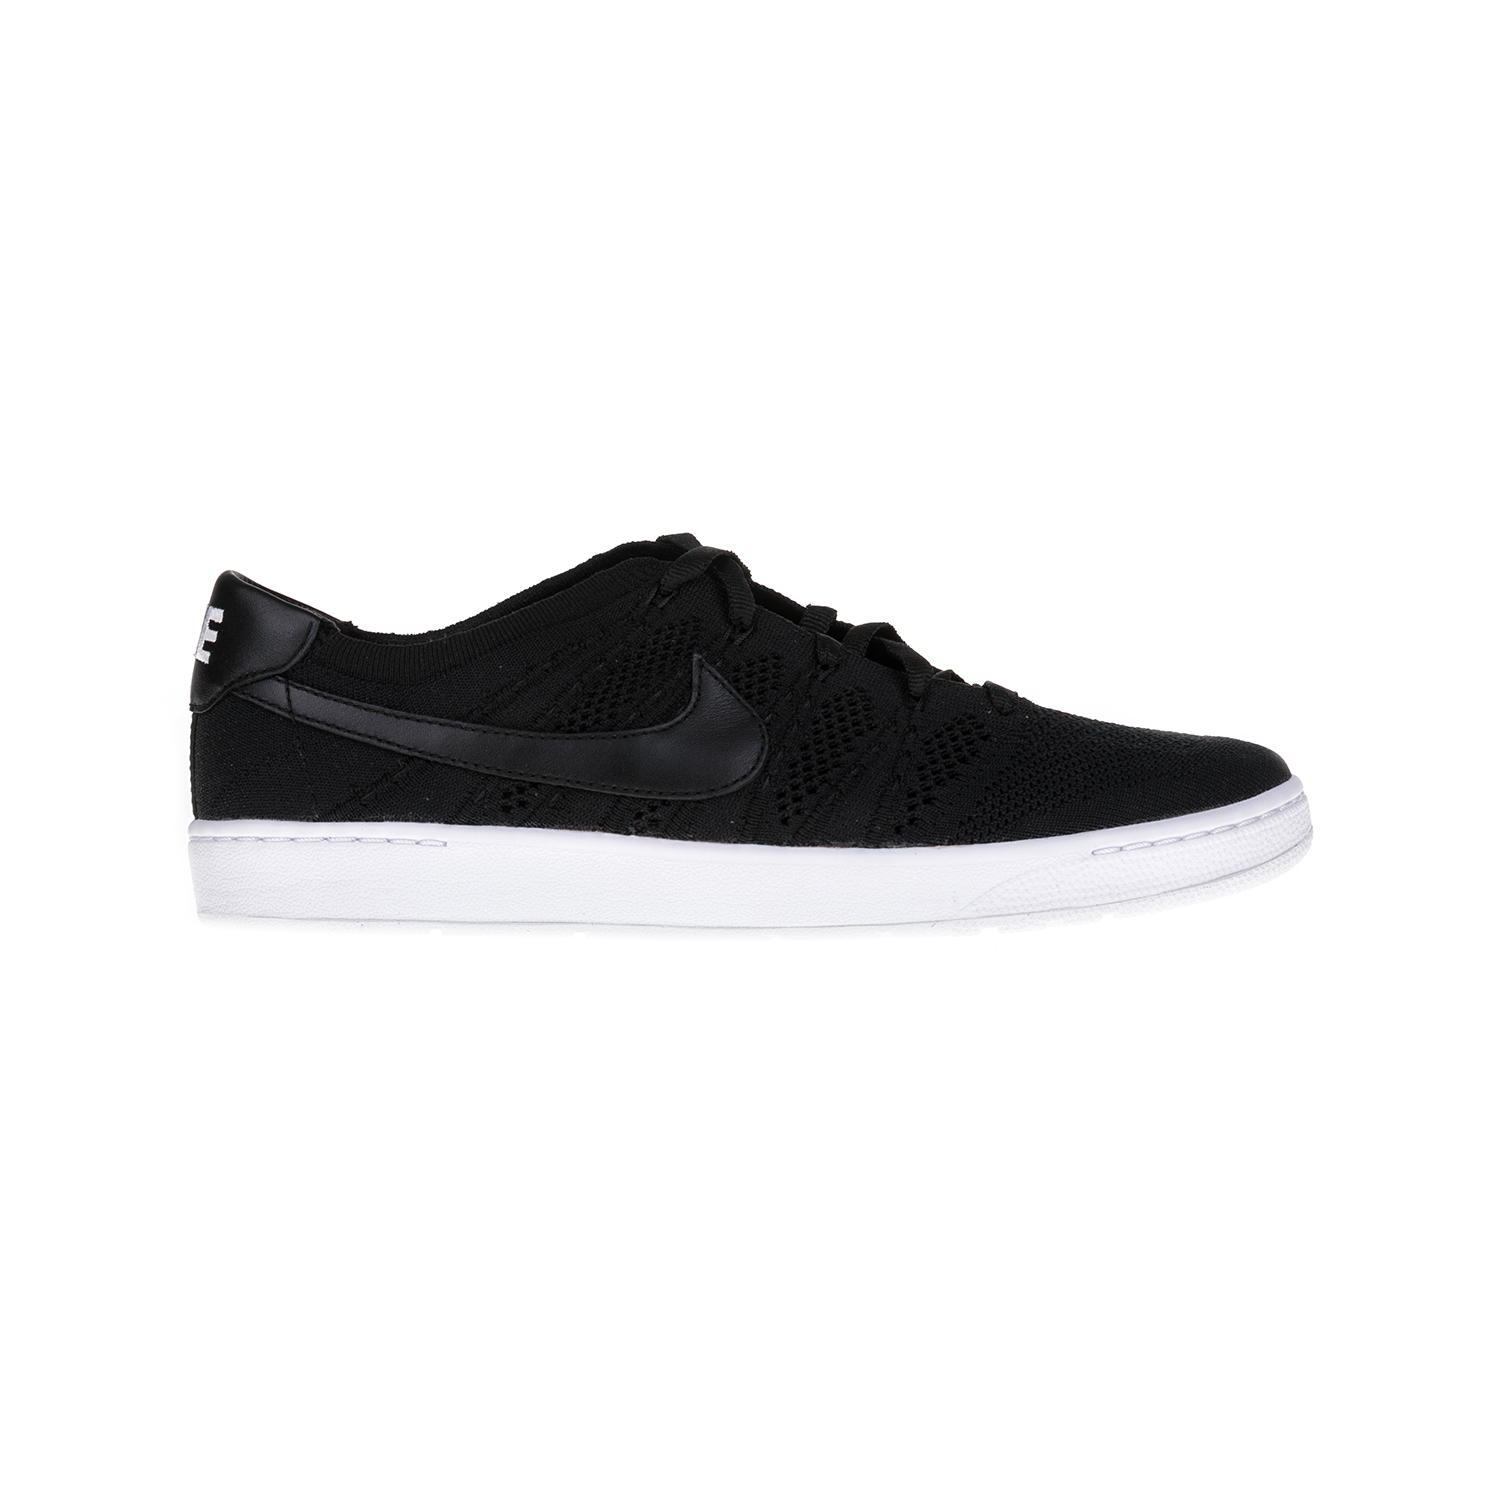 -55% Factory Outlet NIKE – Ανδρικά αθλητικά παπούτσια ΝΙΚΕ TENNIS CLASSIC  ULTRA FLYKNIT μαύρα-λευκά 39d349ebca4